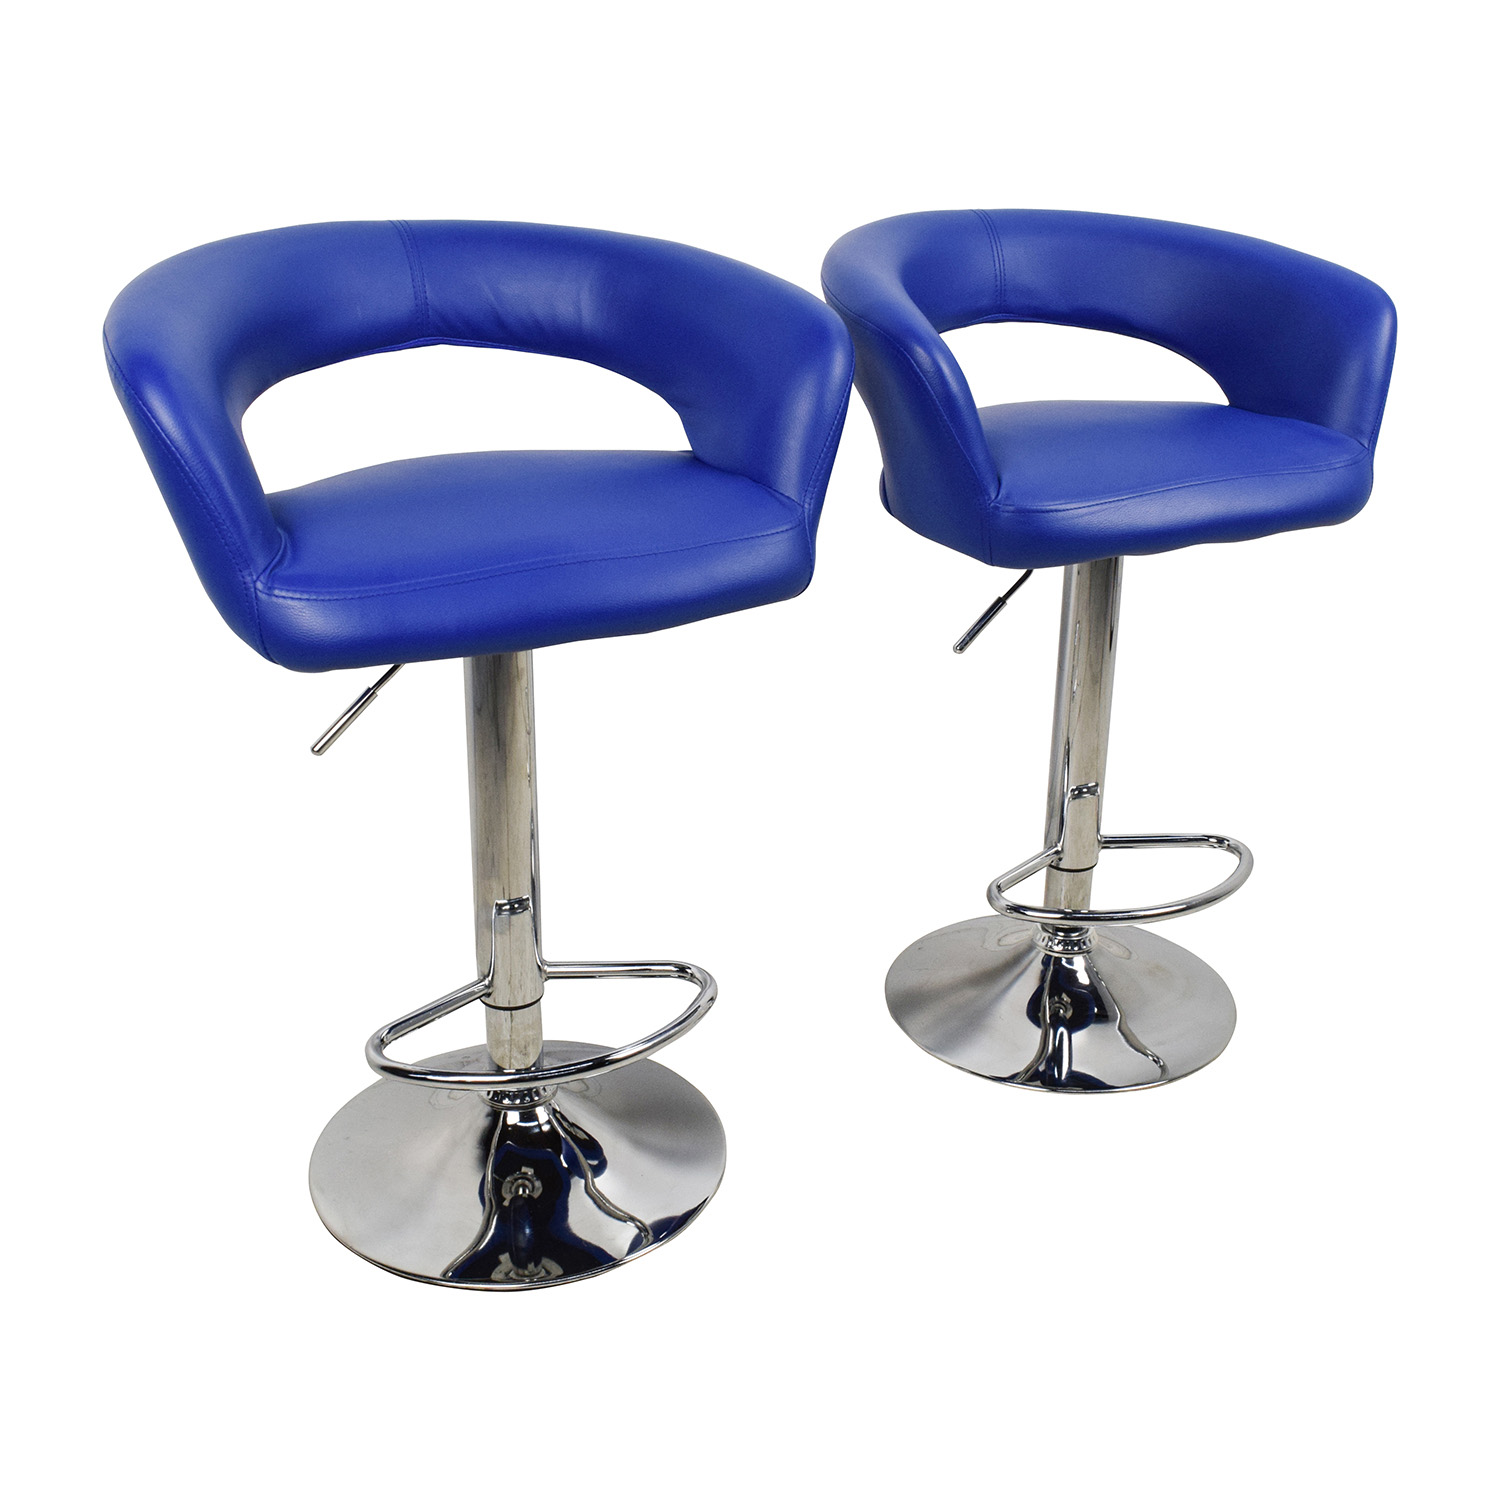 Adjustable Height Bar Stools Swivel 79 Off All Modern All